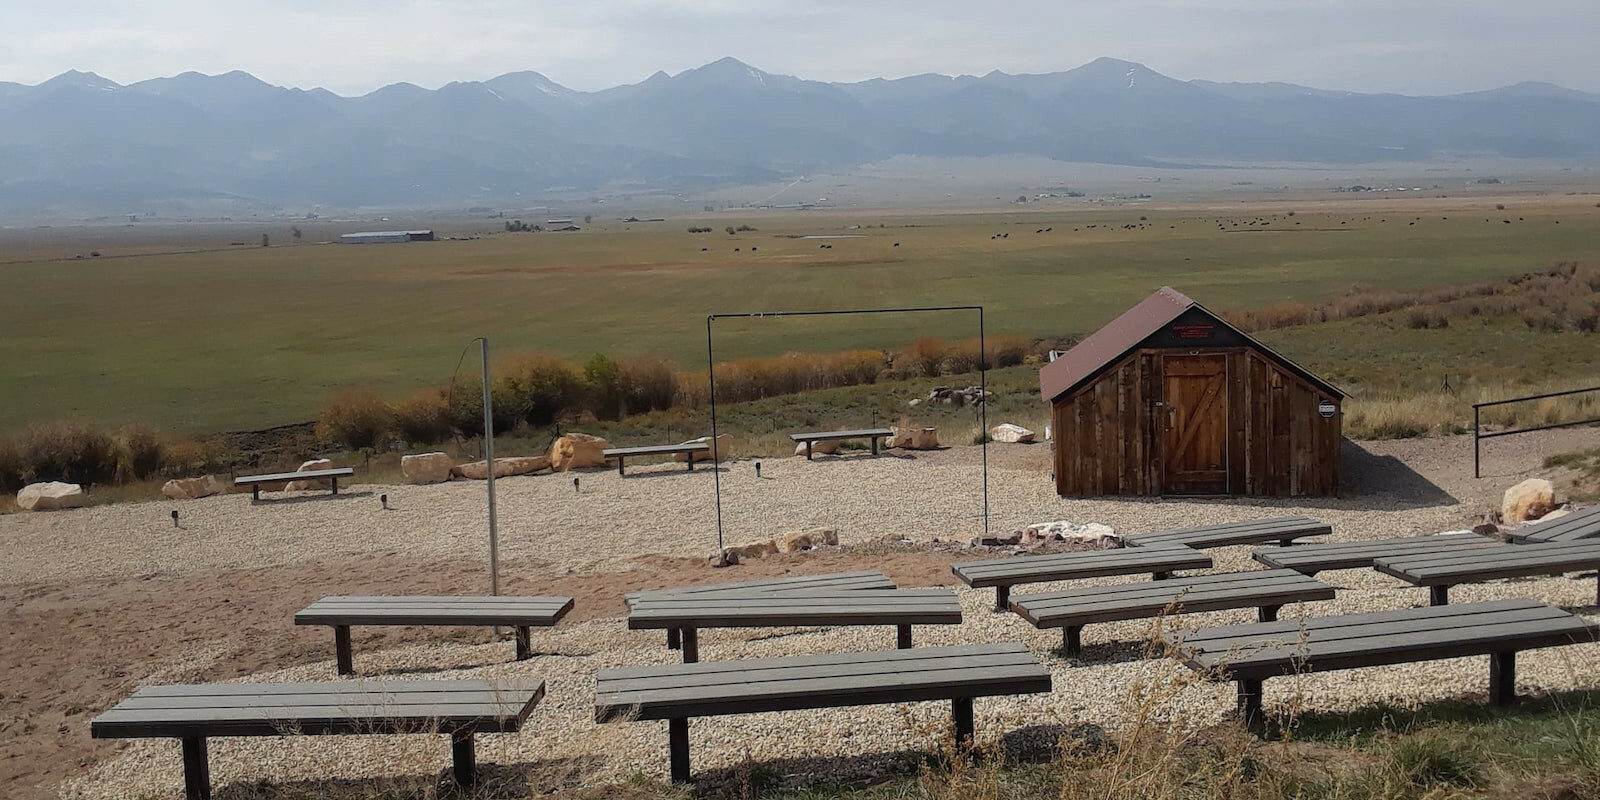 Image of the Smokey Jack Observatory in Westcliffe, Colorado